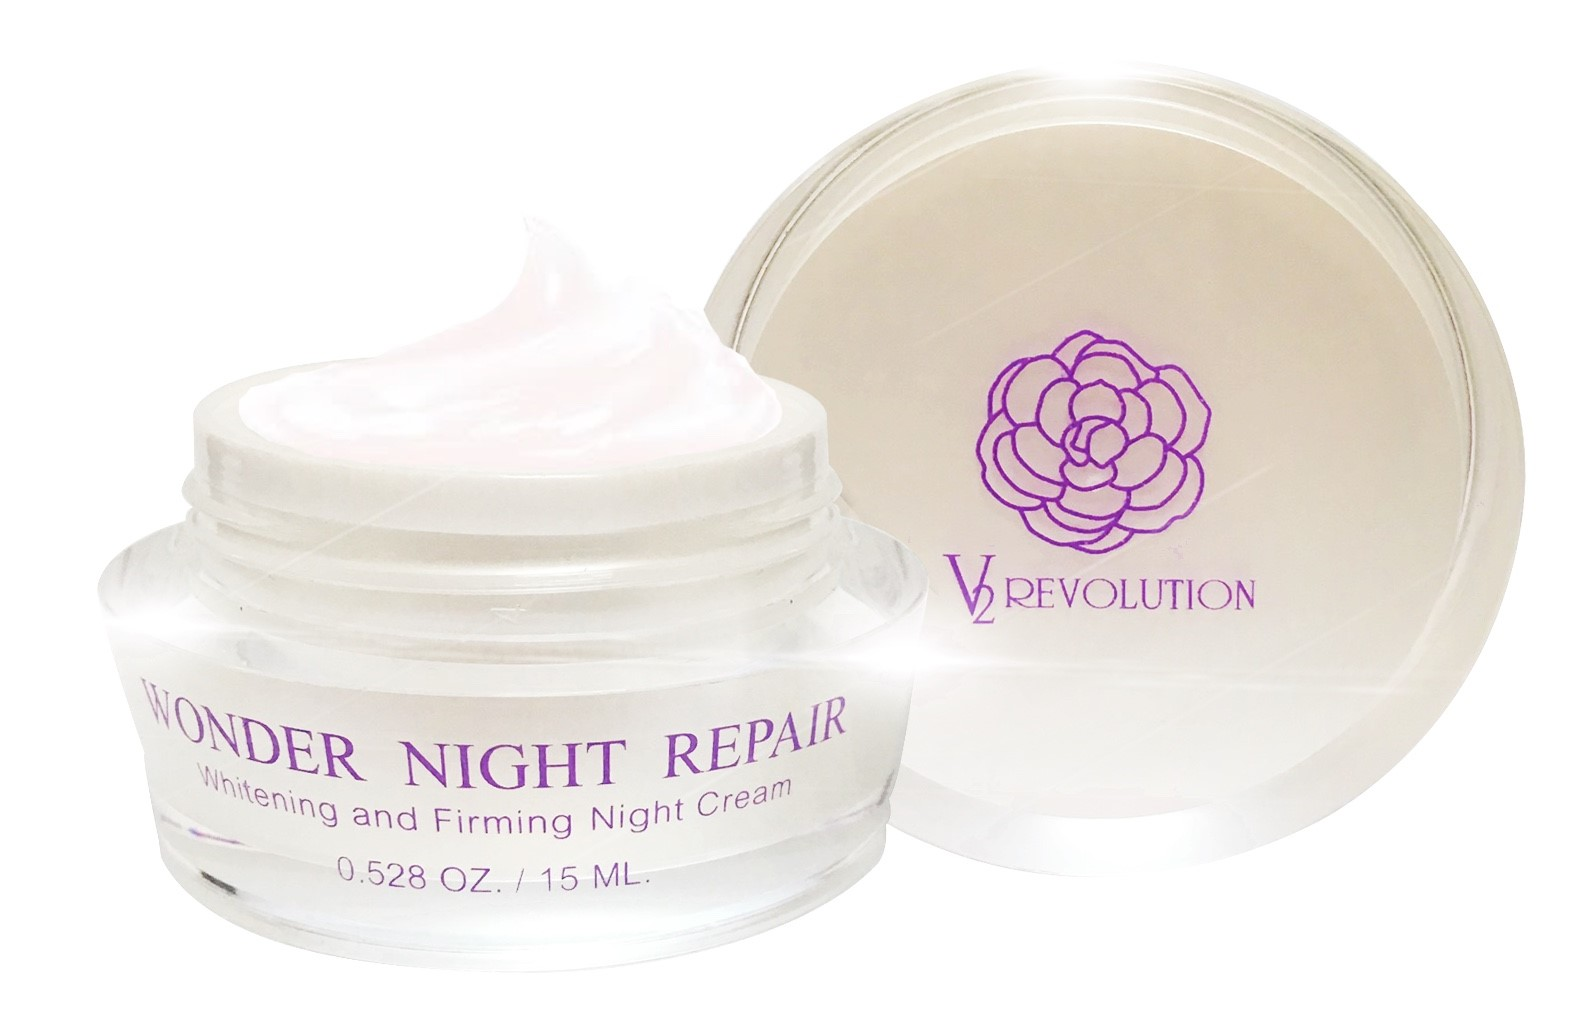 V2 Revolution Wonder Night Repair